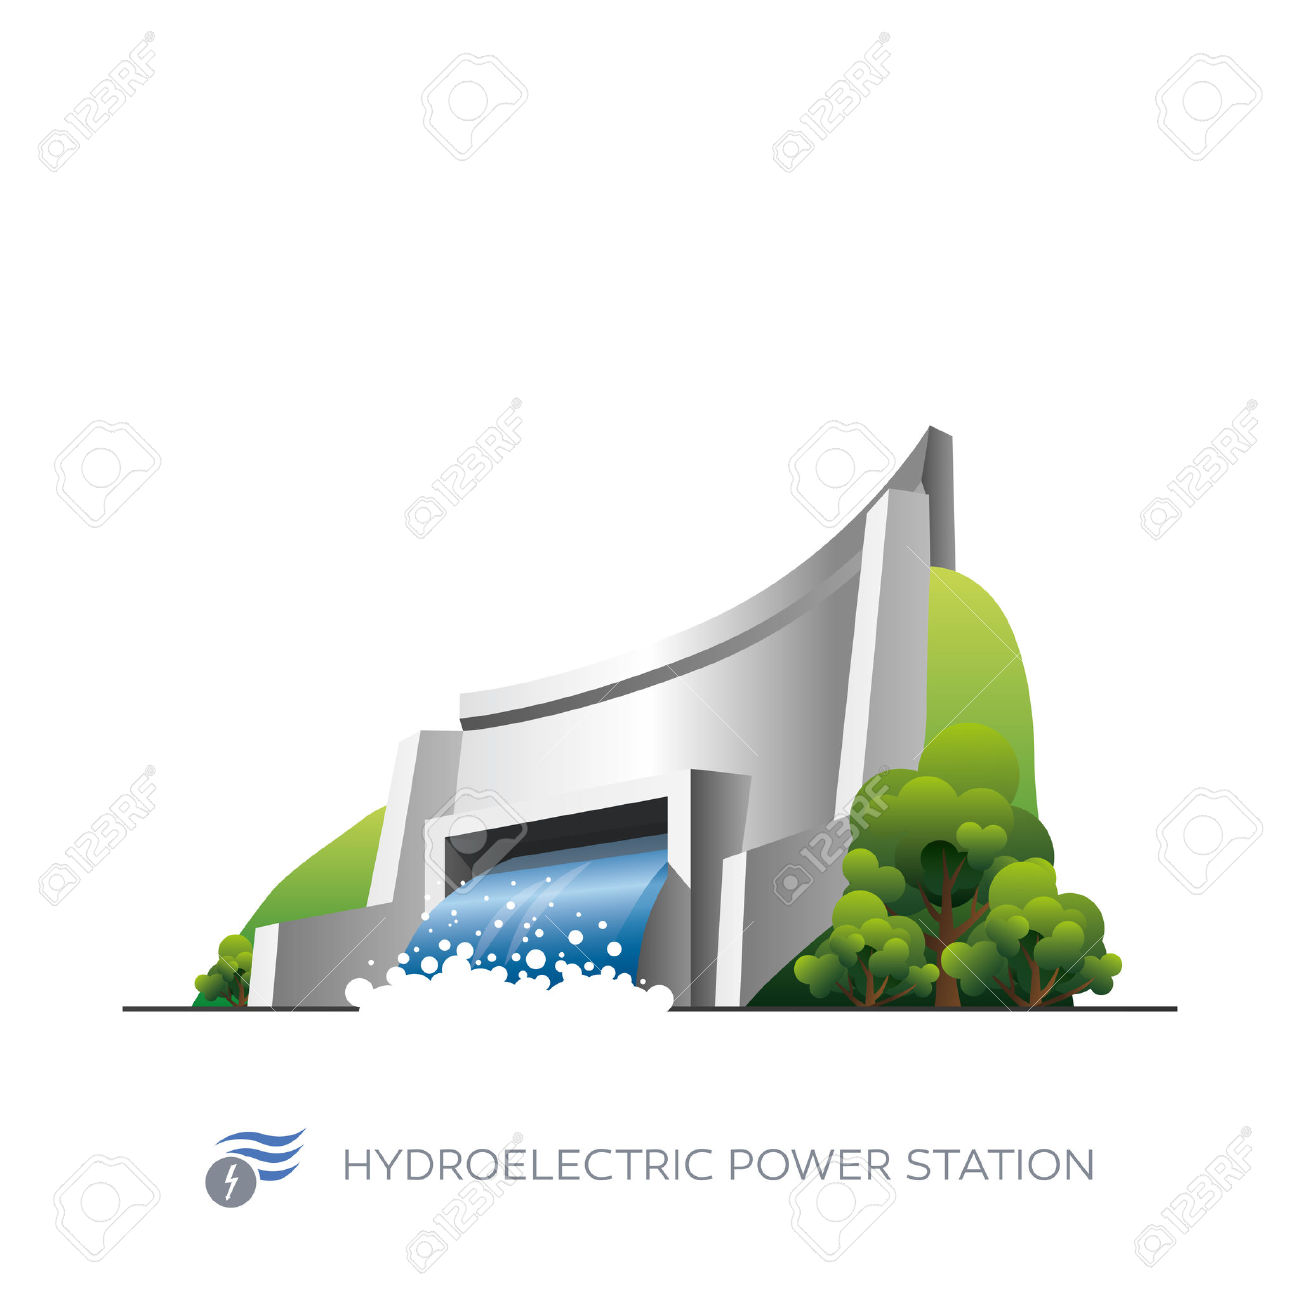 Hydroelectric power station clipart #11